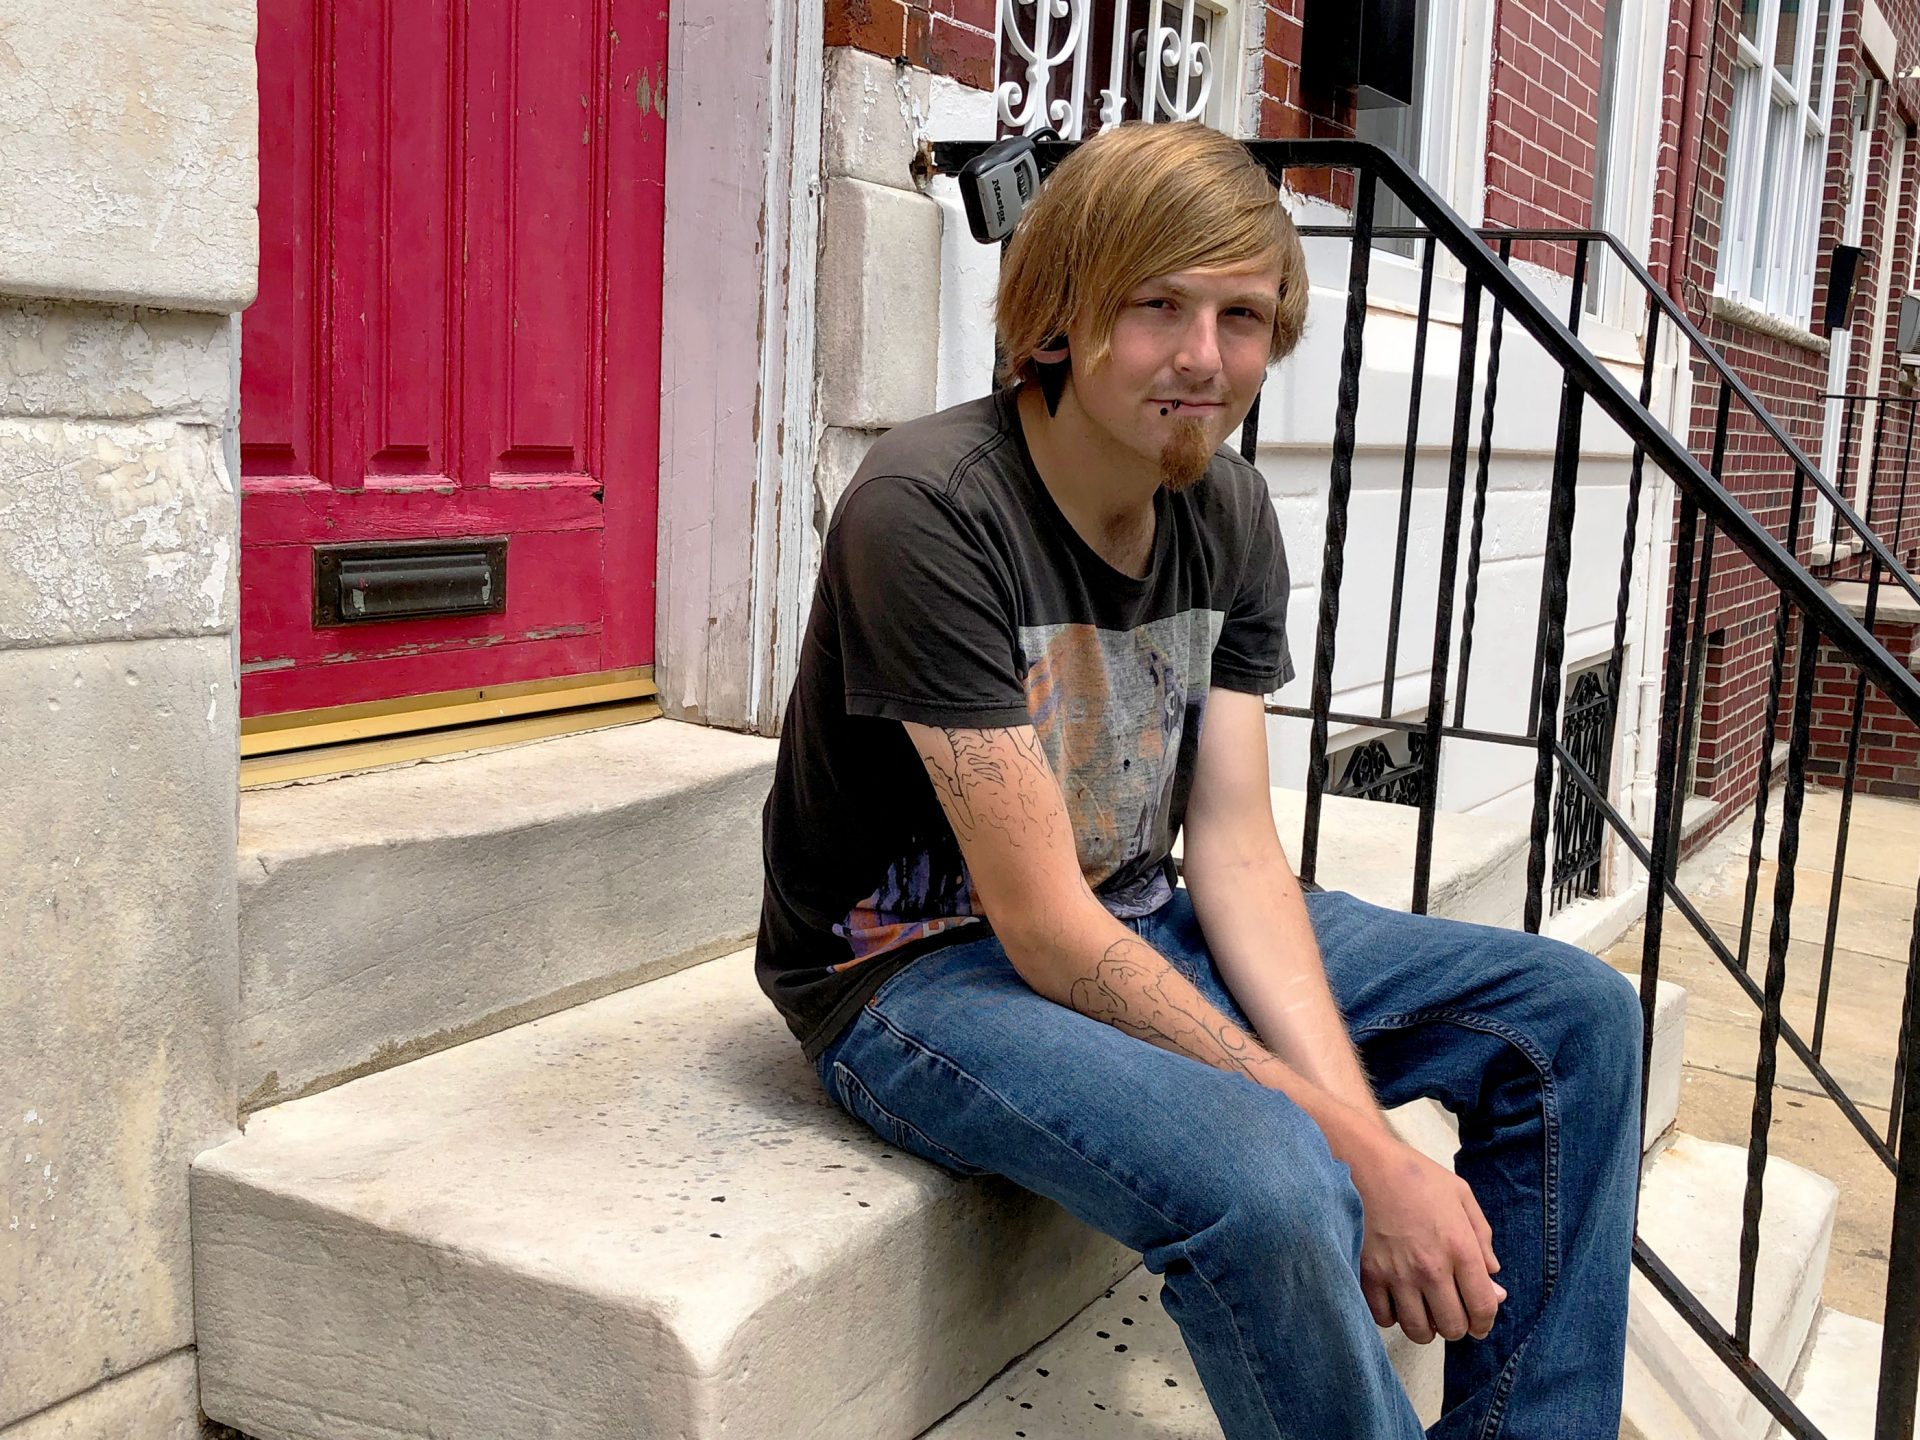 Brad Wienczkowski outside his recovery house in South Philly in June. Wienczkowski overdosed after being kicked out of treatment for smoking a cigarette.